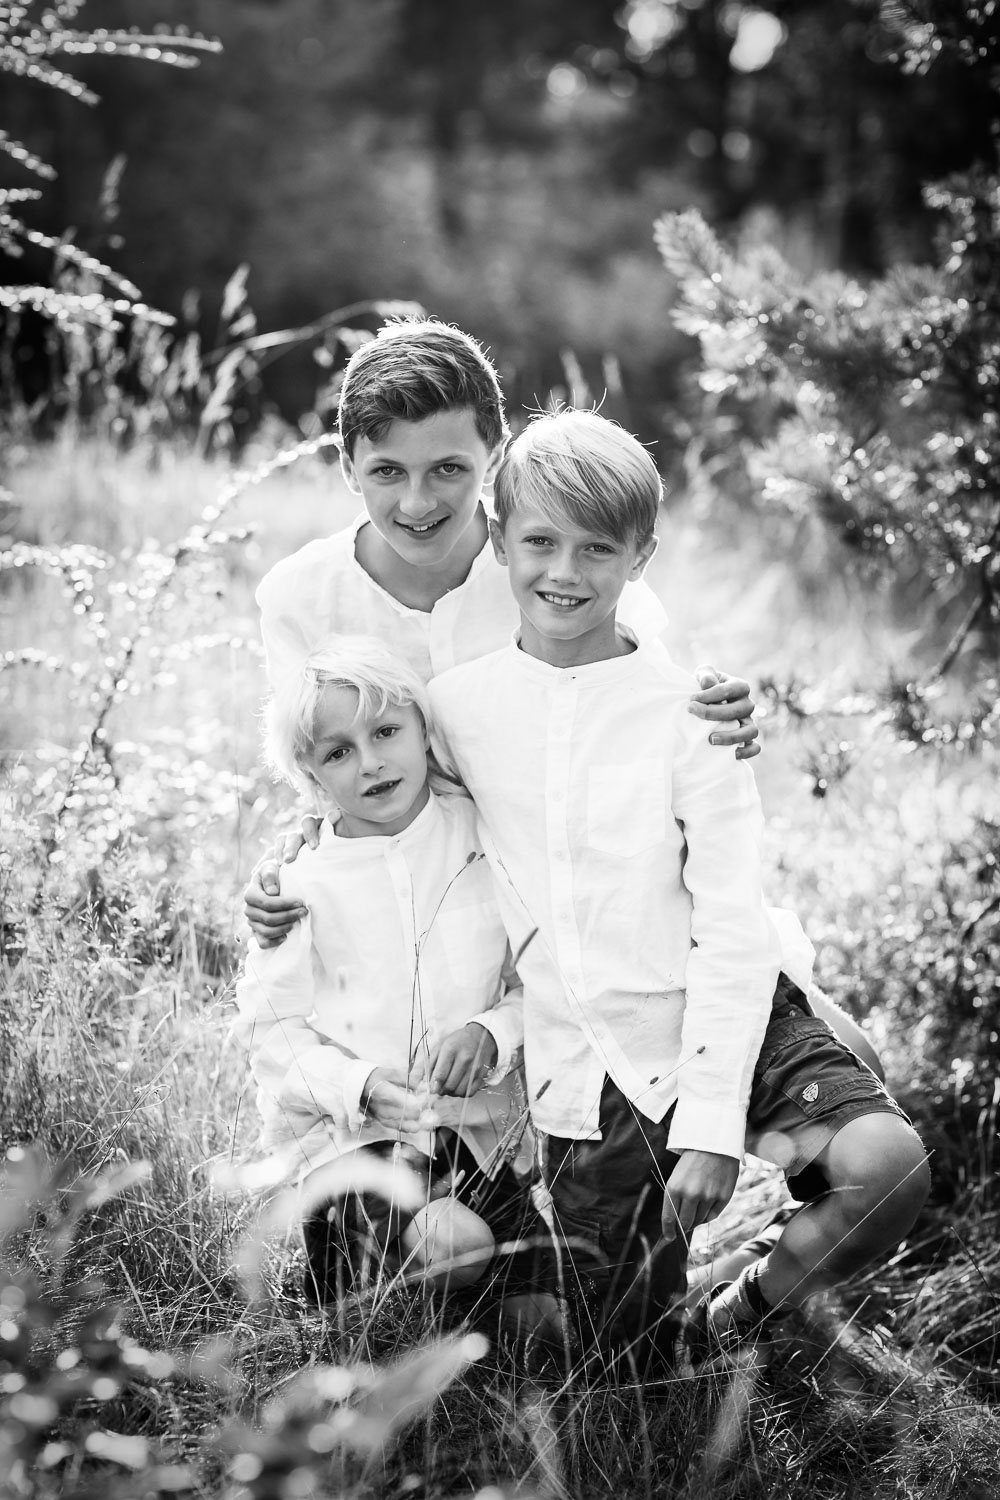 Black-and-white-photo-of-sibling-boys-by-bästa-familjefotografen-Sandra-Jolly.jpg